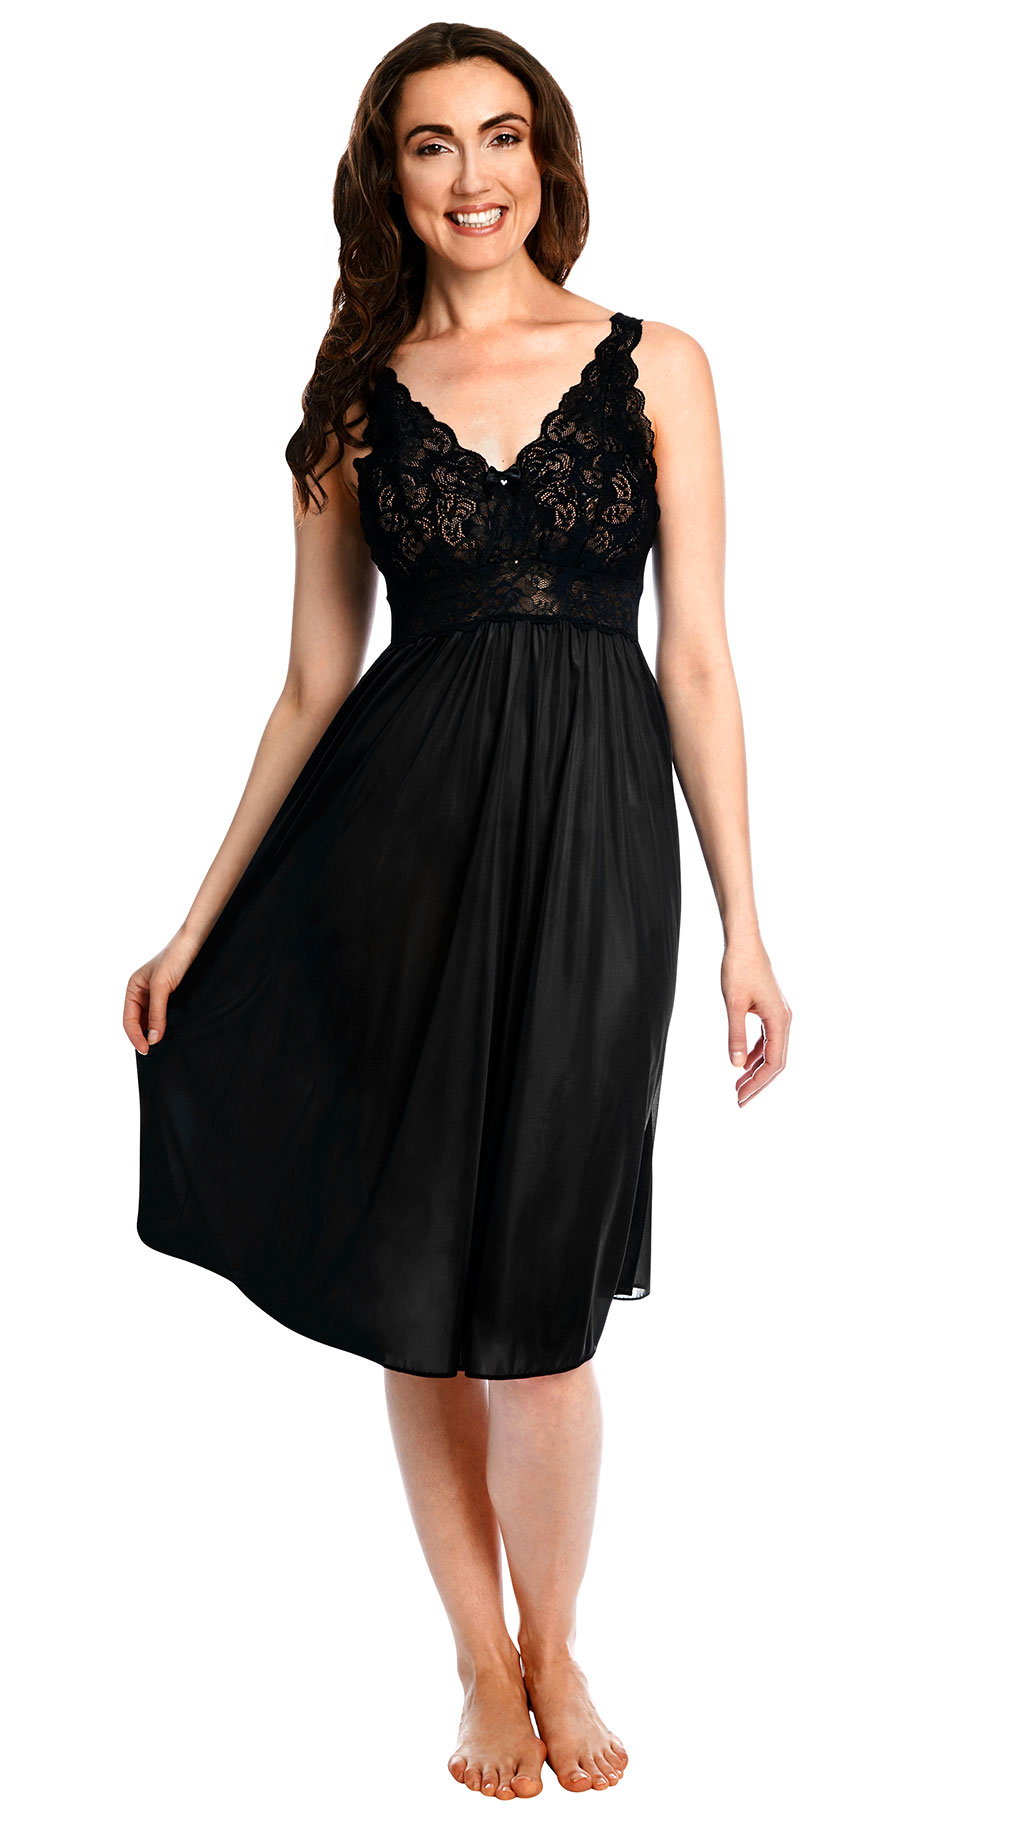 Women's Short Lace Nightgown